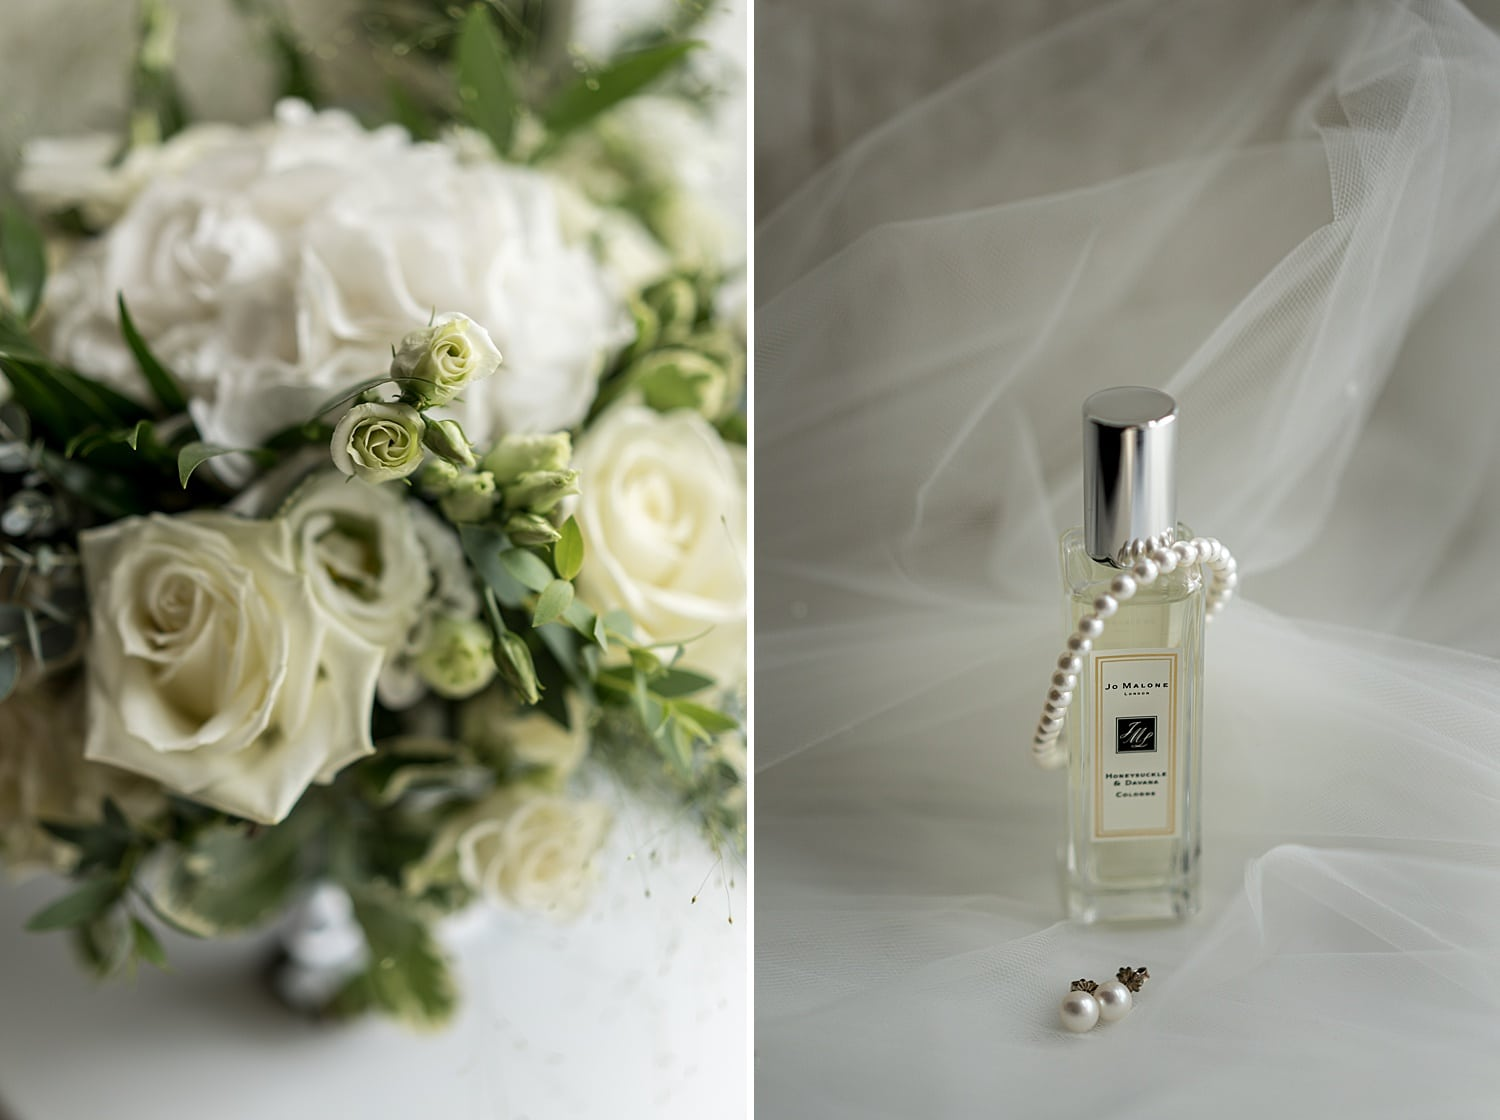 Bridal bouquet and perfume bottle